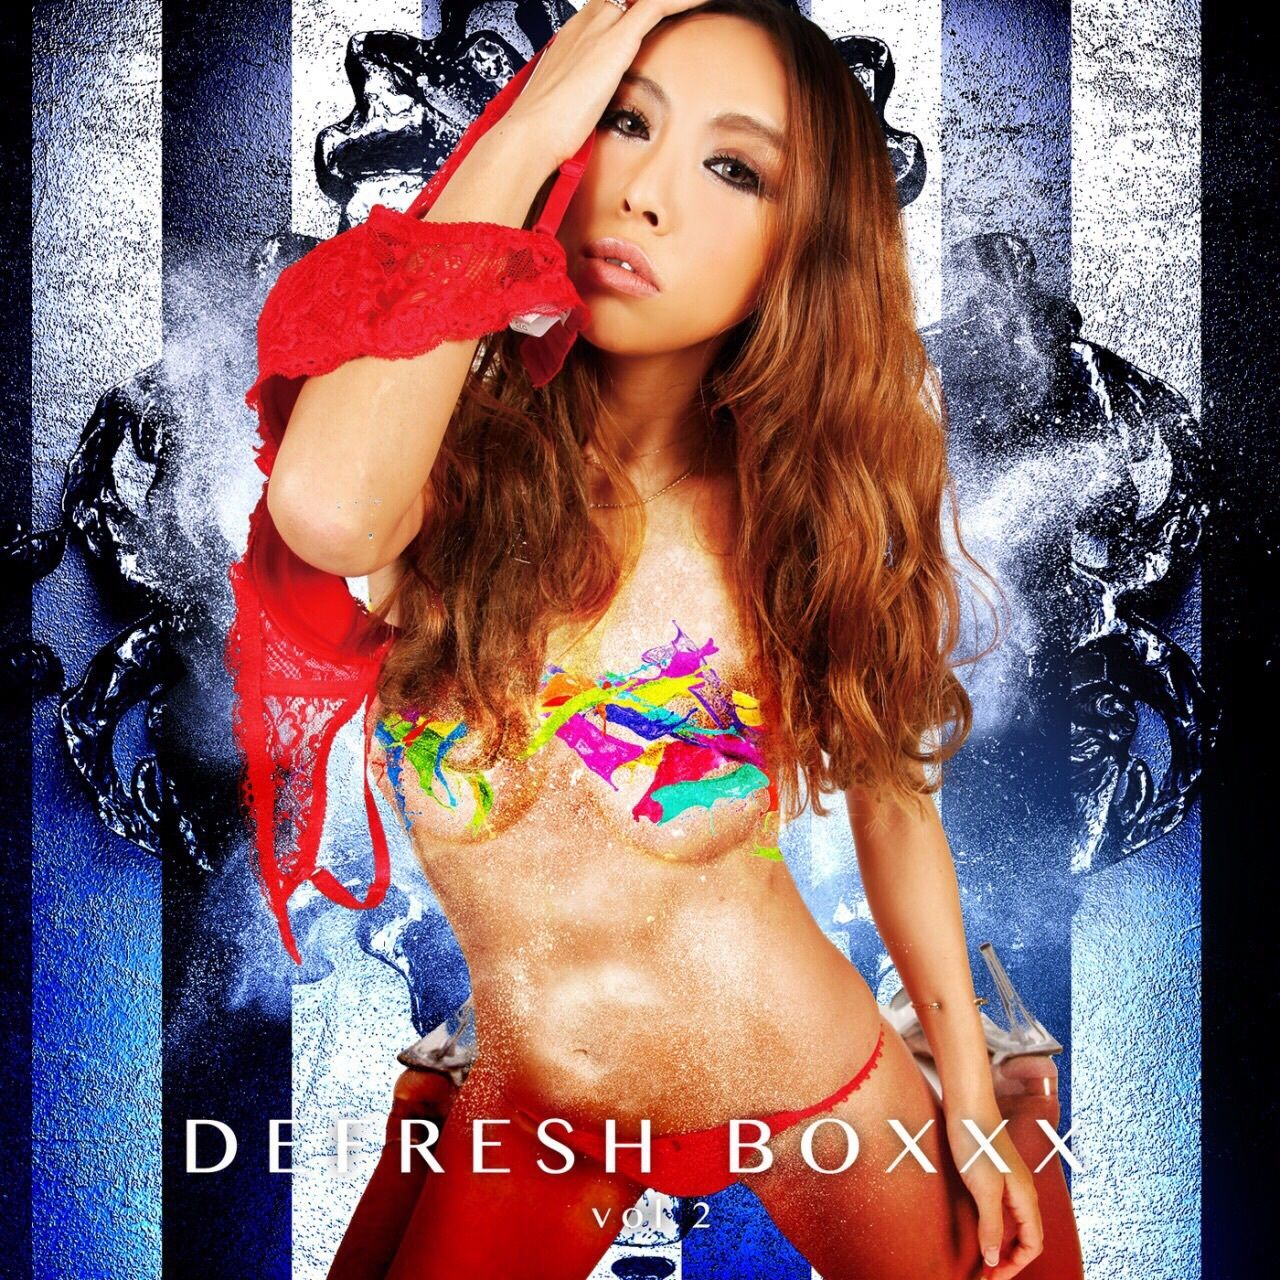 DEFRESH BOXXX vol.2